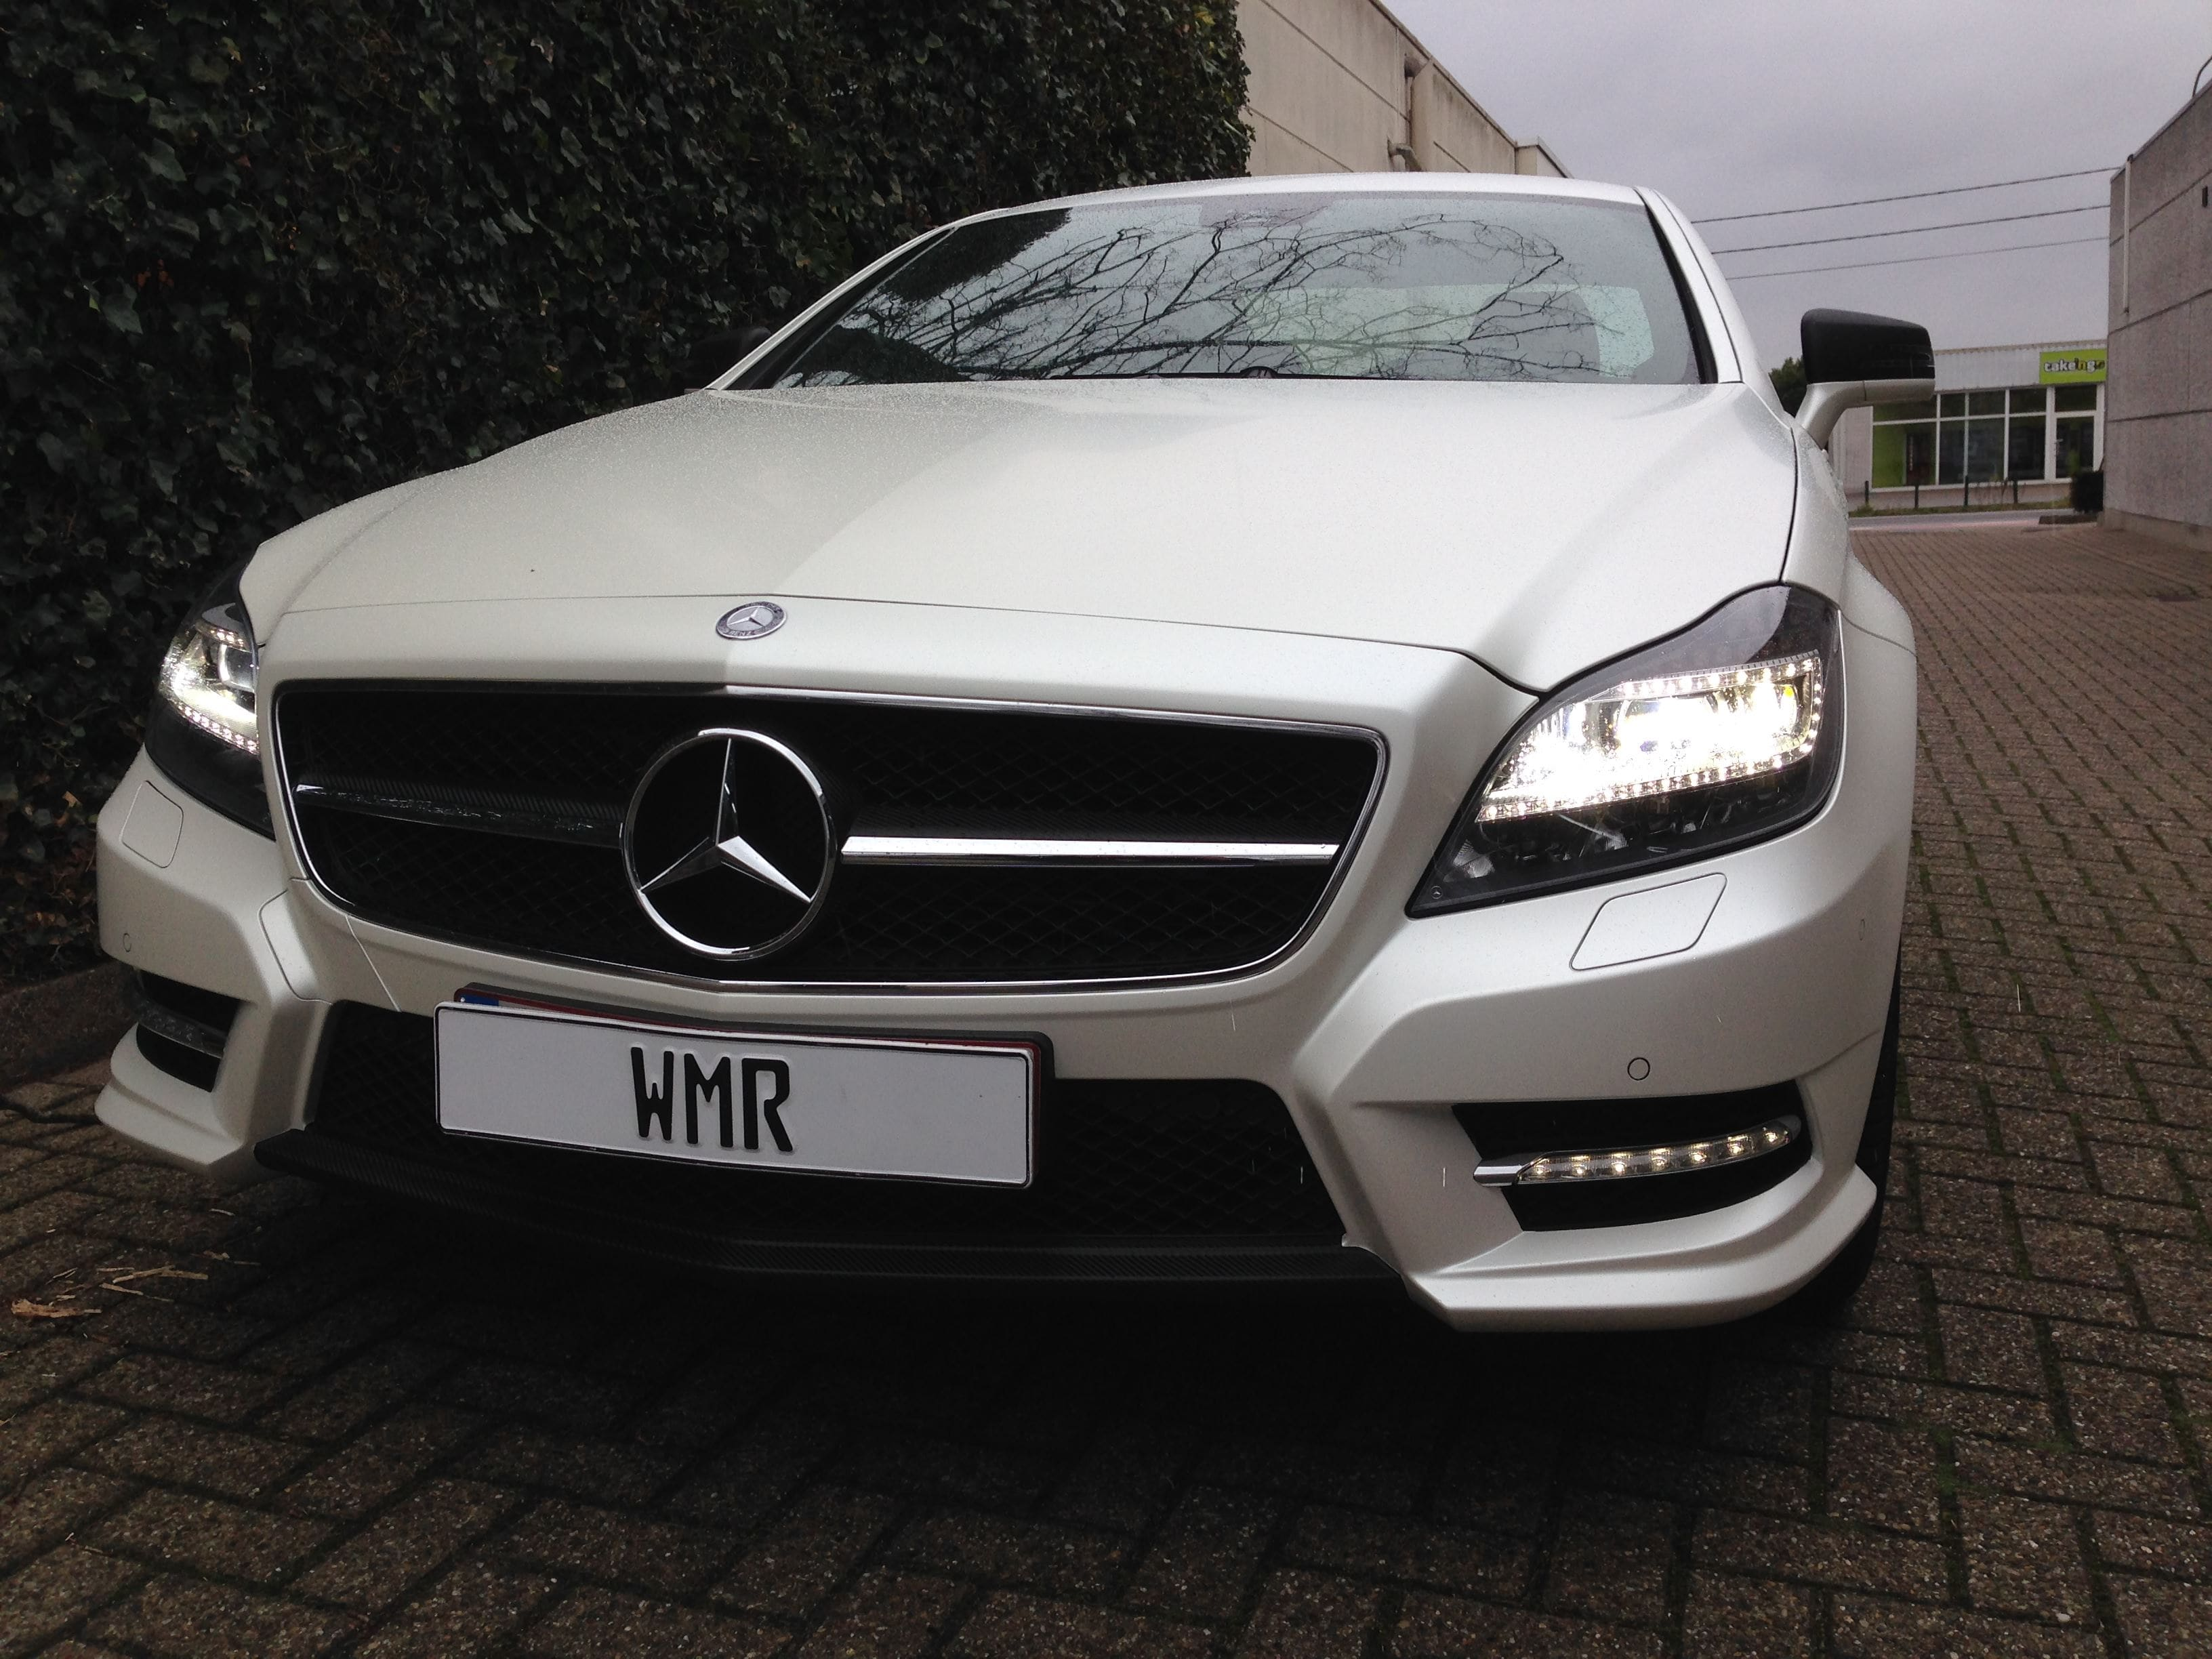 Mercedes CLS met White Satin Pearl Wrap, Carwrapping door Wrapmyride.nu Foto-nr:6203, ©2020